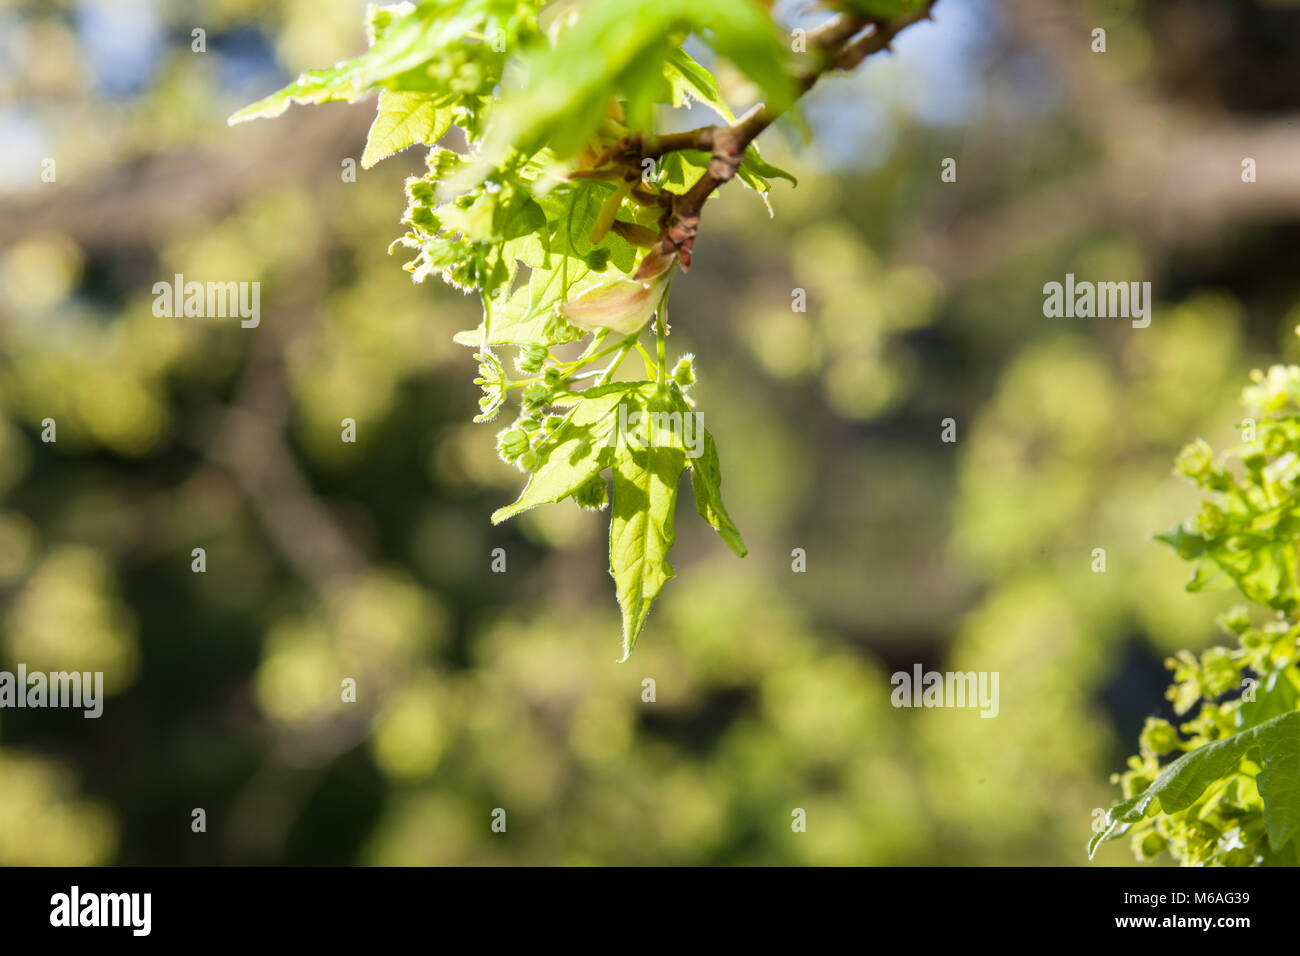 Miyabe, Miyabelönn d'érable (Acer miyabei) Photo Stock